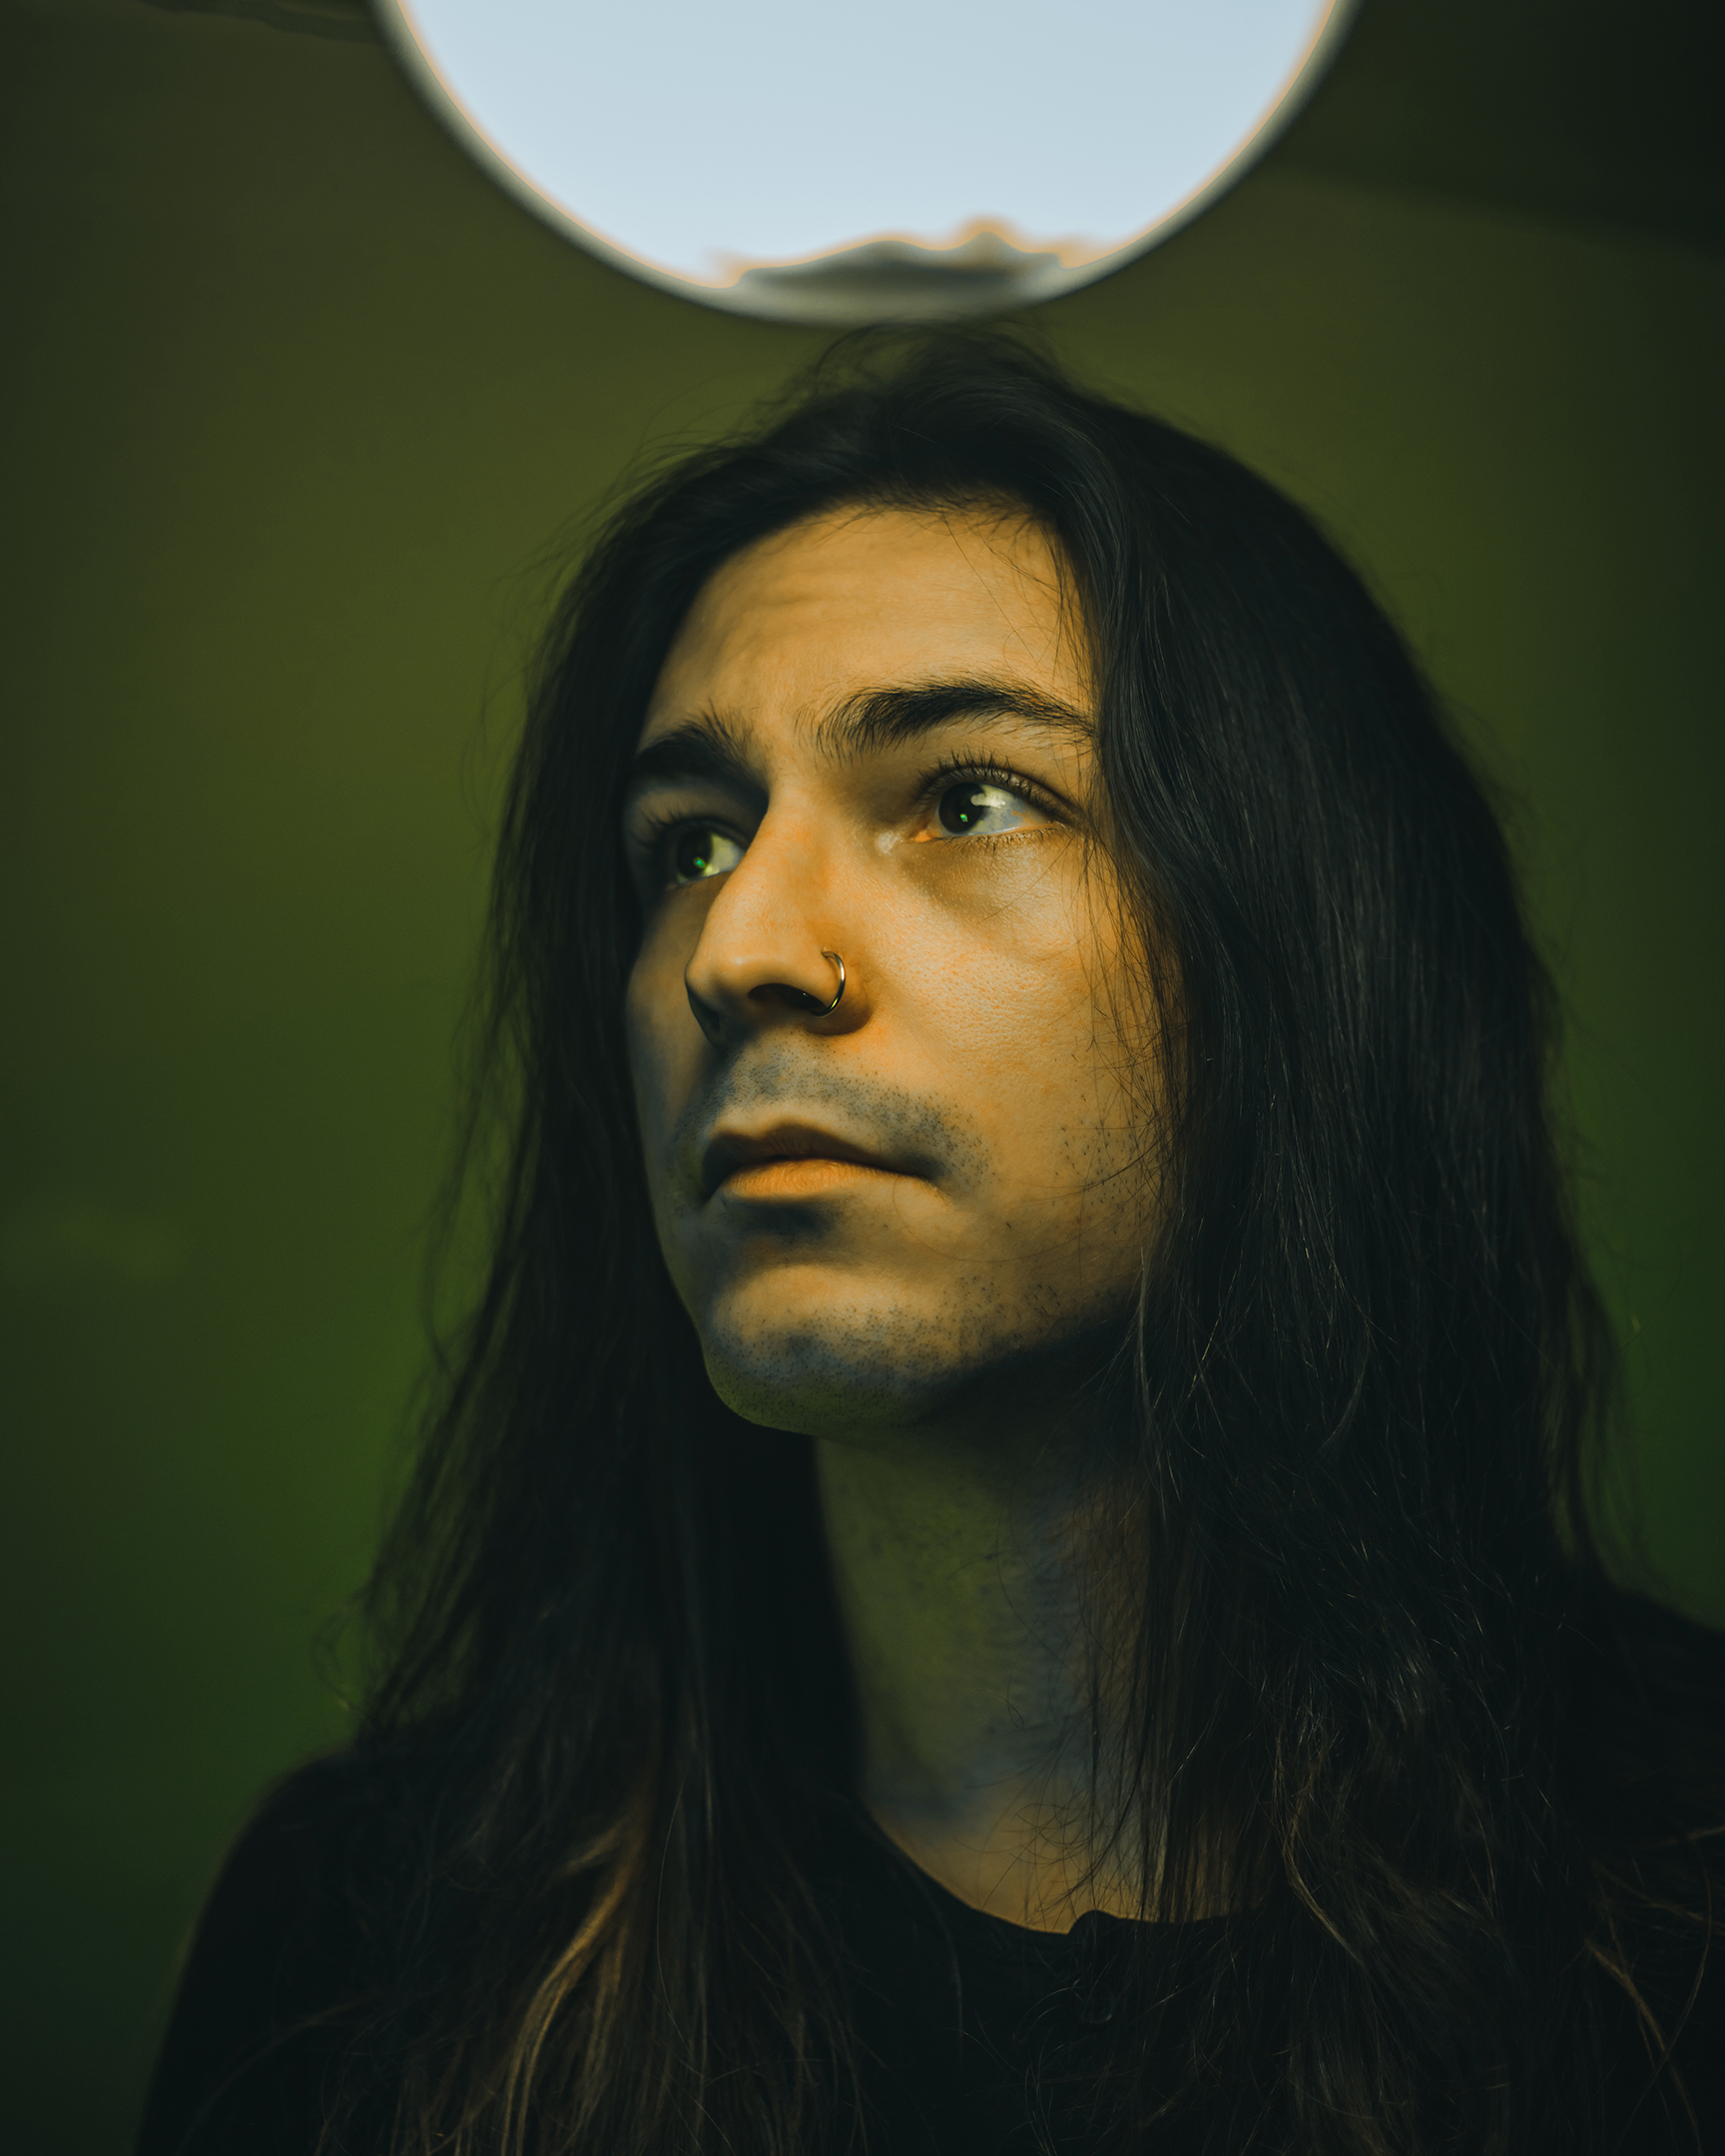 stoic pose of long black haired male looking off into the distance